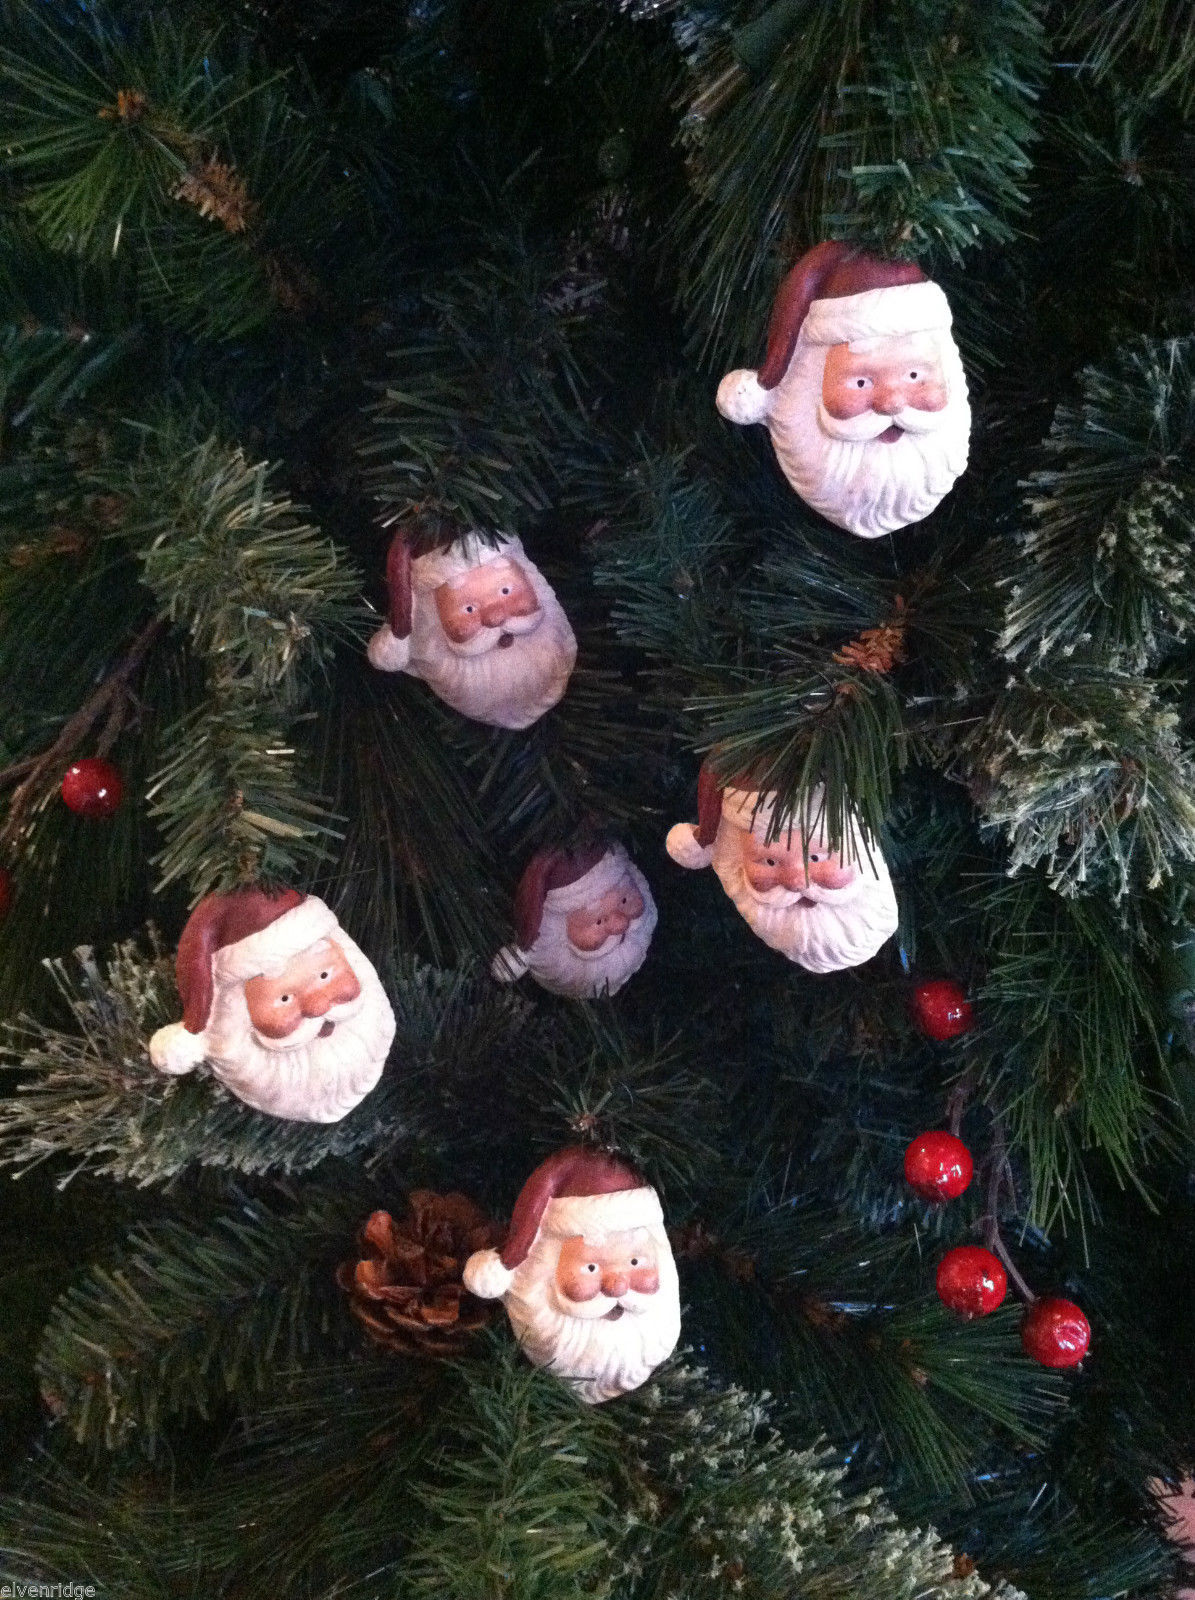 Set of 6 Santa Head Christmas Ornaments with flat back